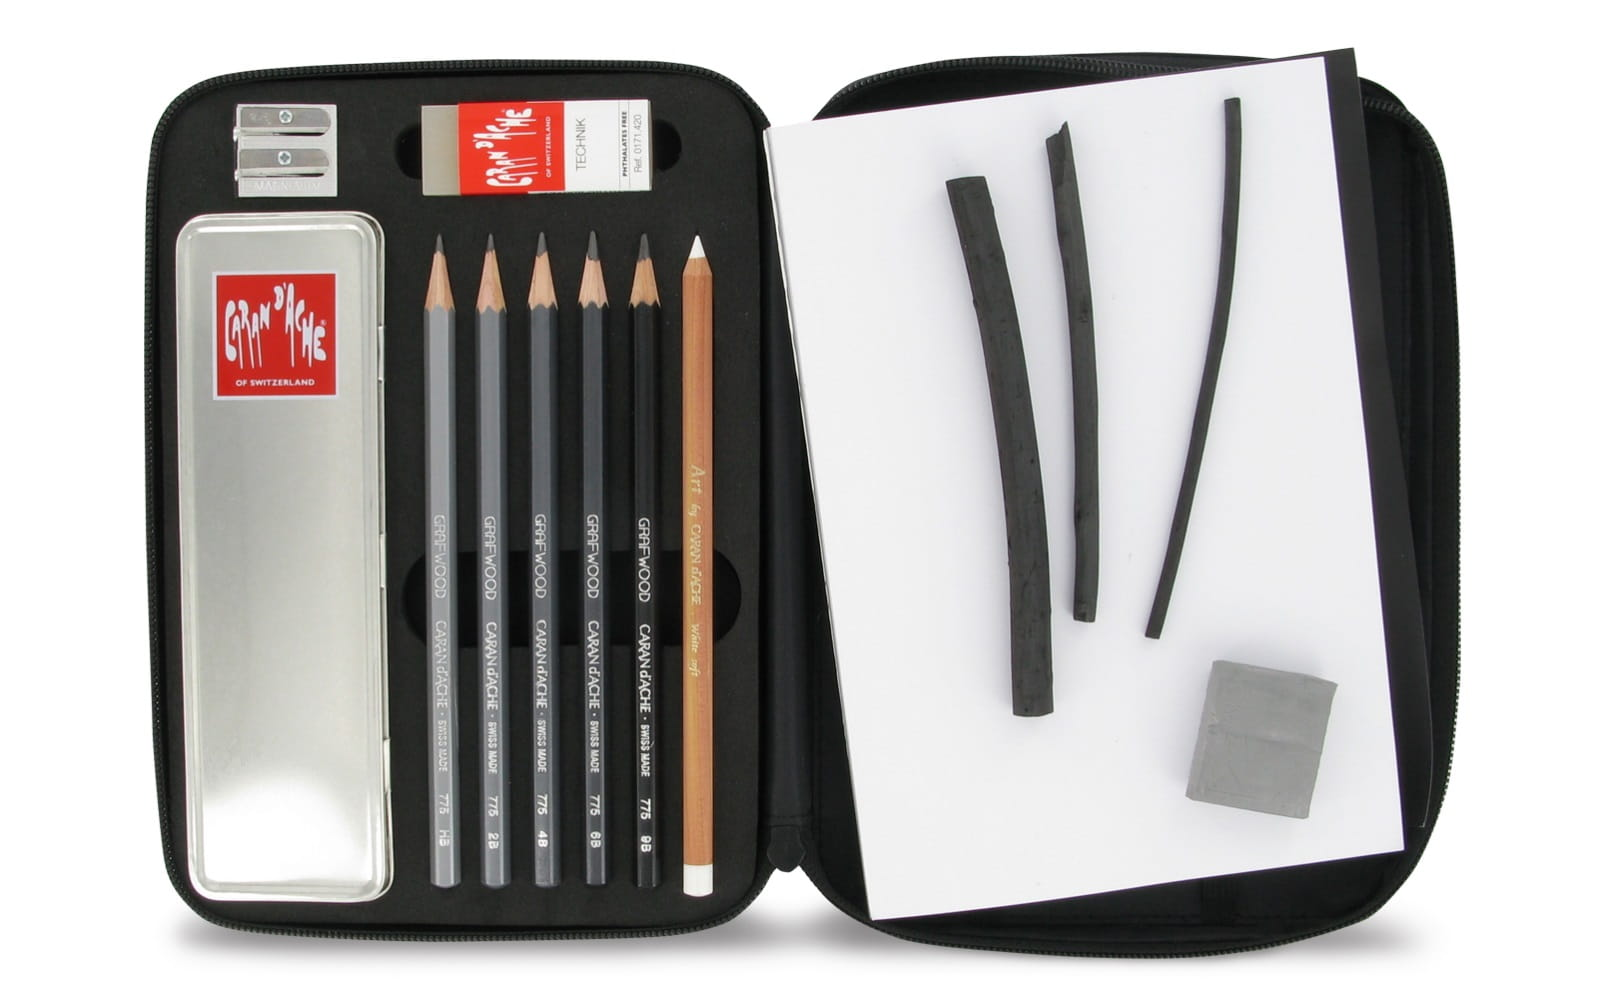 graphite-line-book-assortiment-nomade.jpg